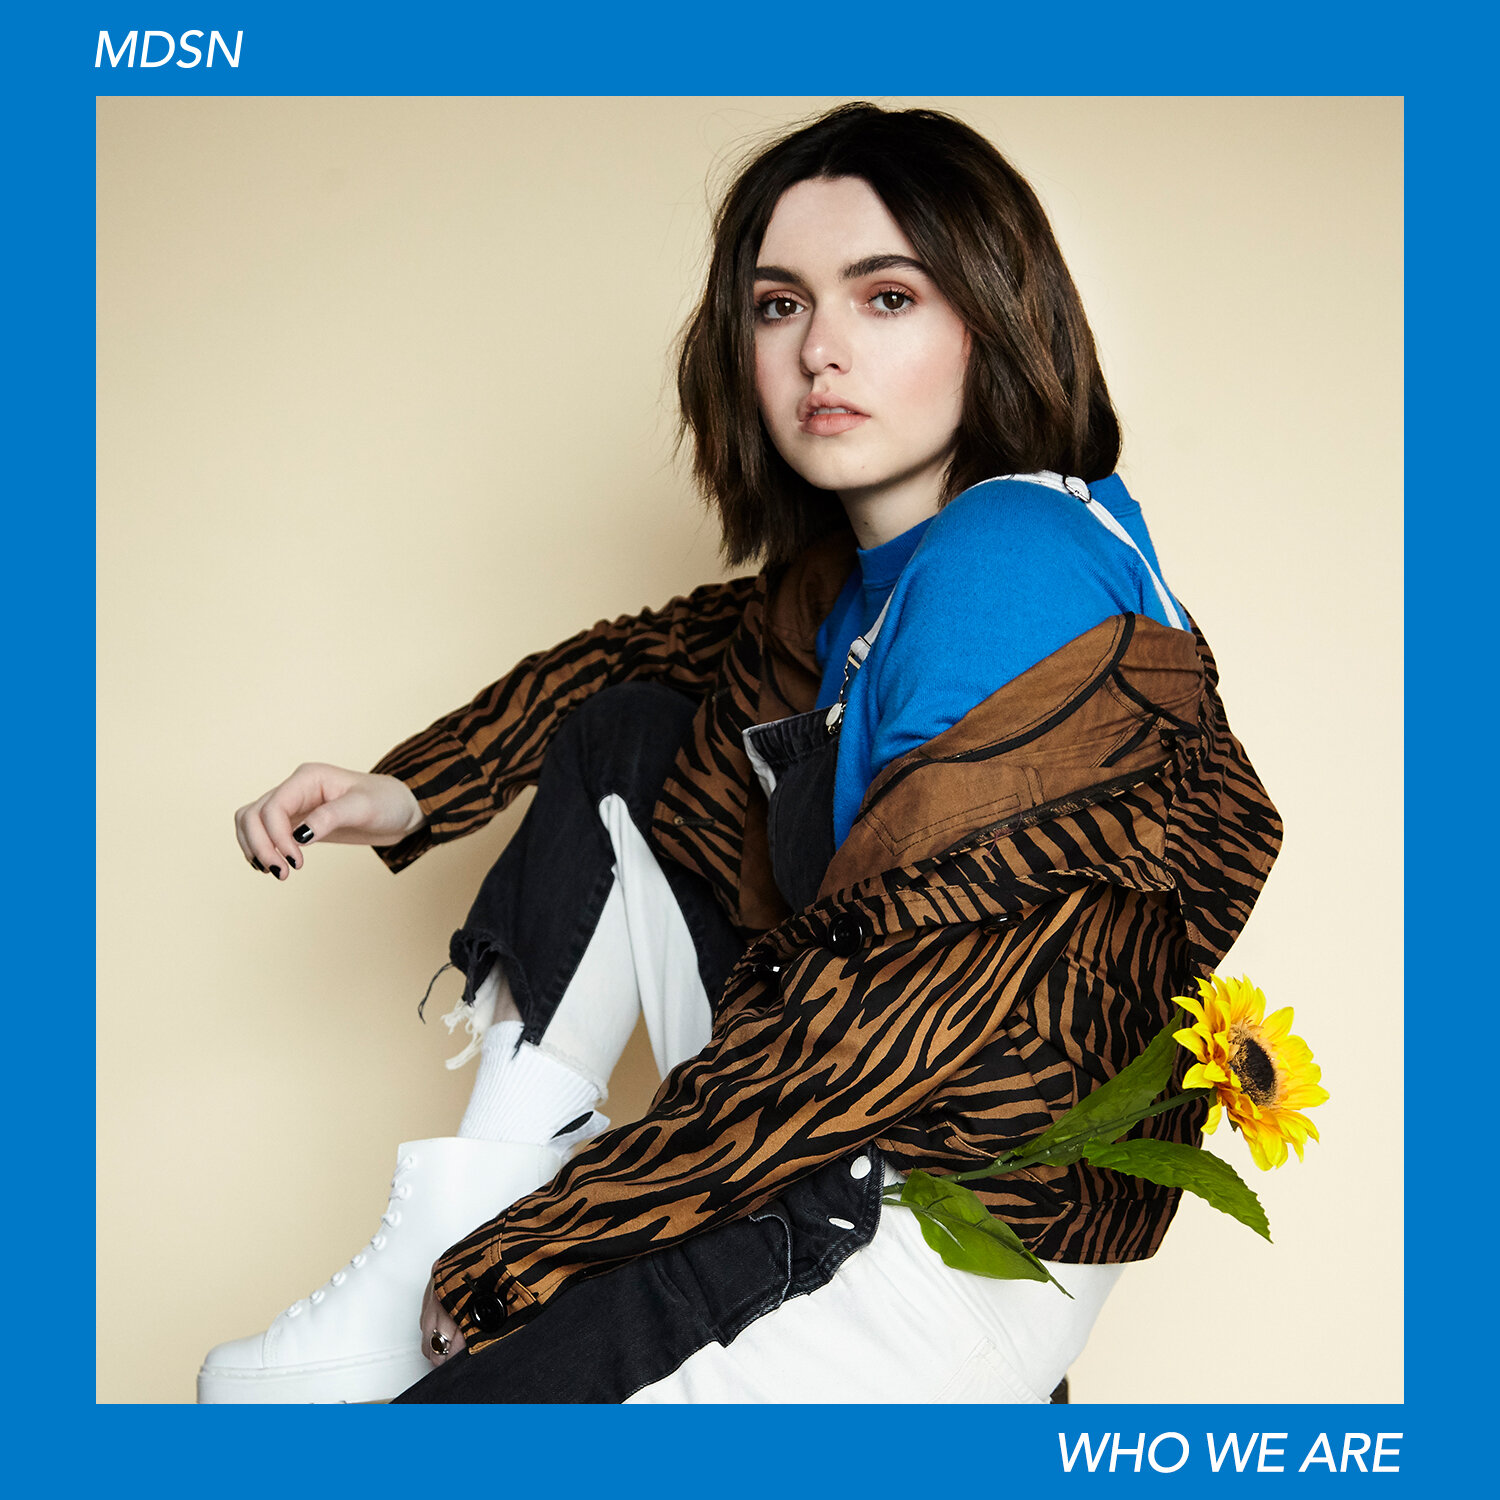 MDSN_Who We Are_Final Cover_1500x1500.jpg